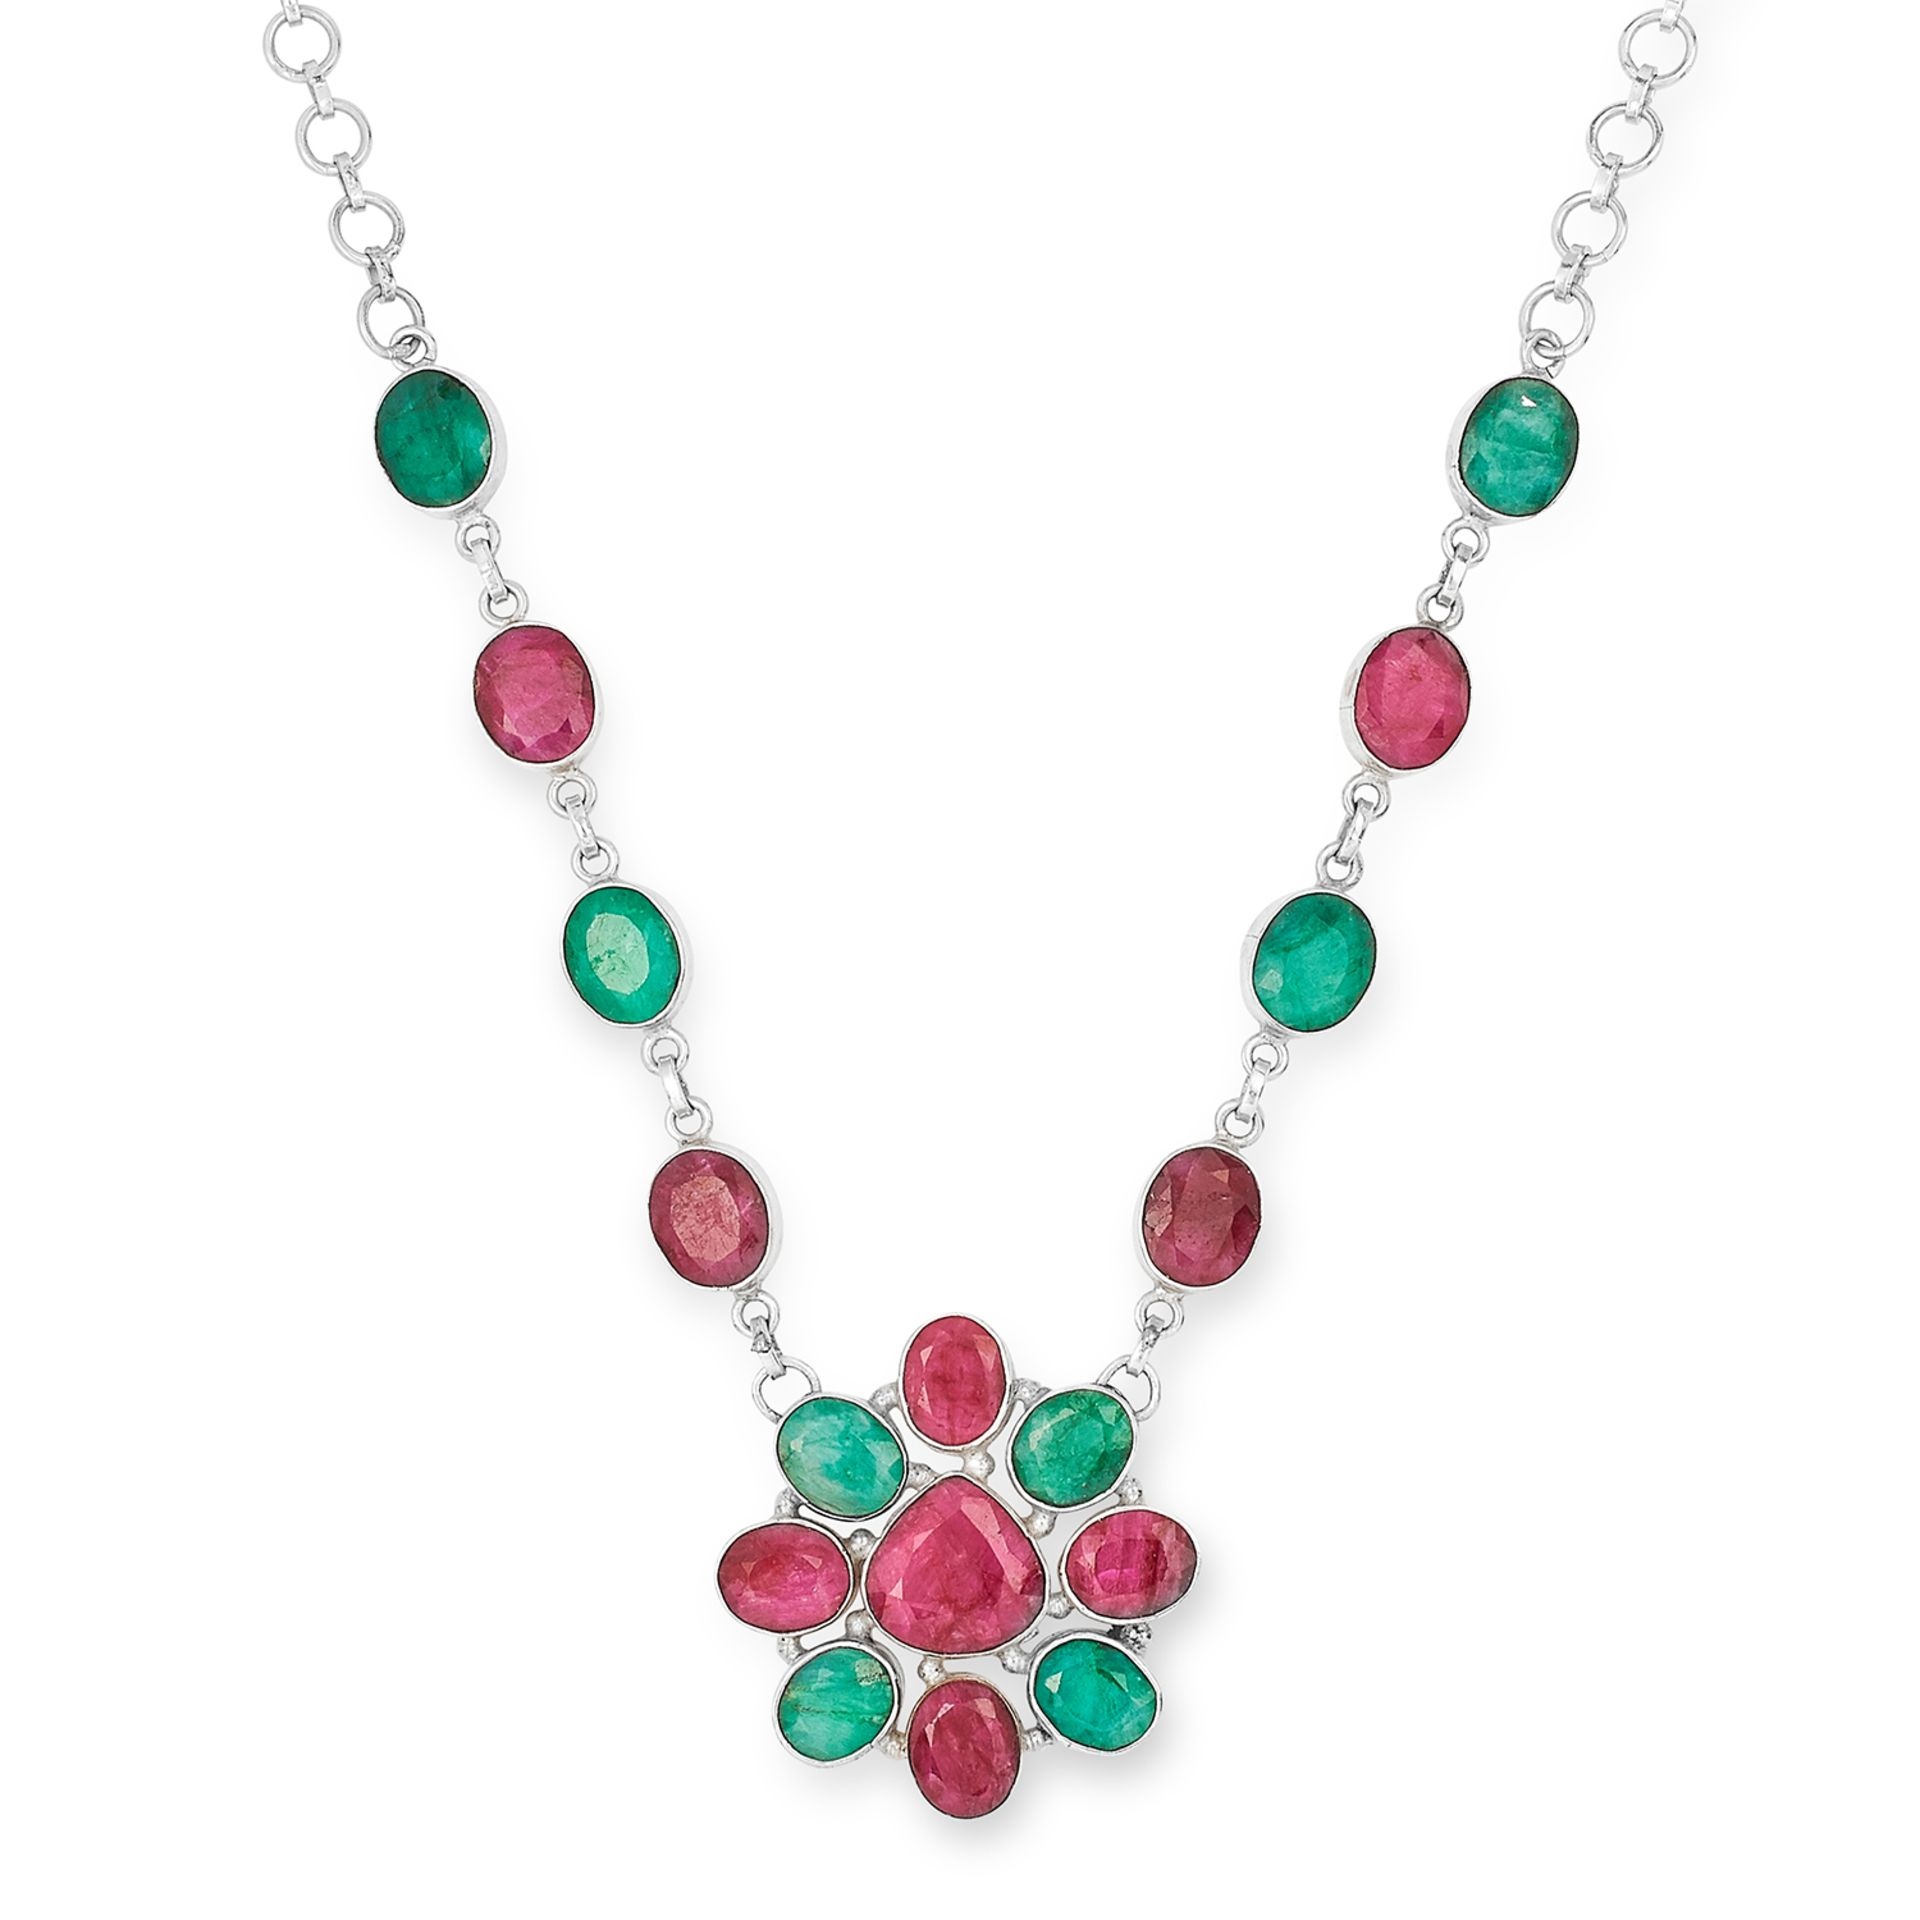 RUBY AND EMERALD NECKLACE, designed as a flower, 46.5cm, 46.7g.